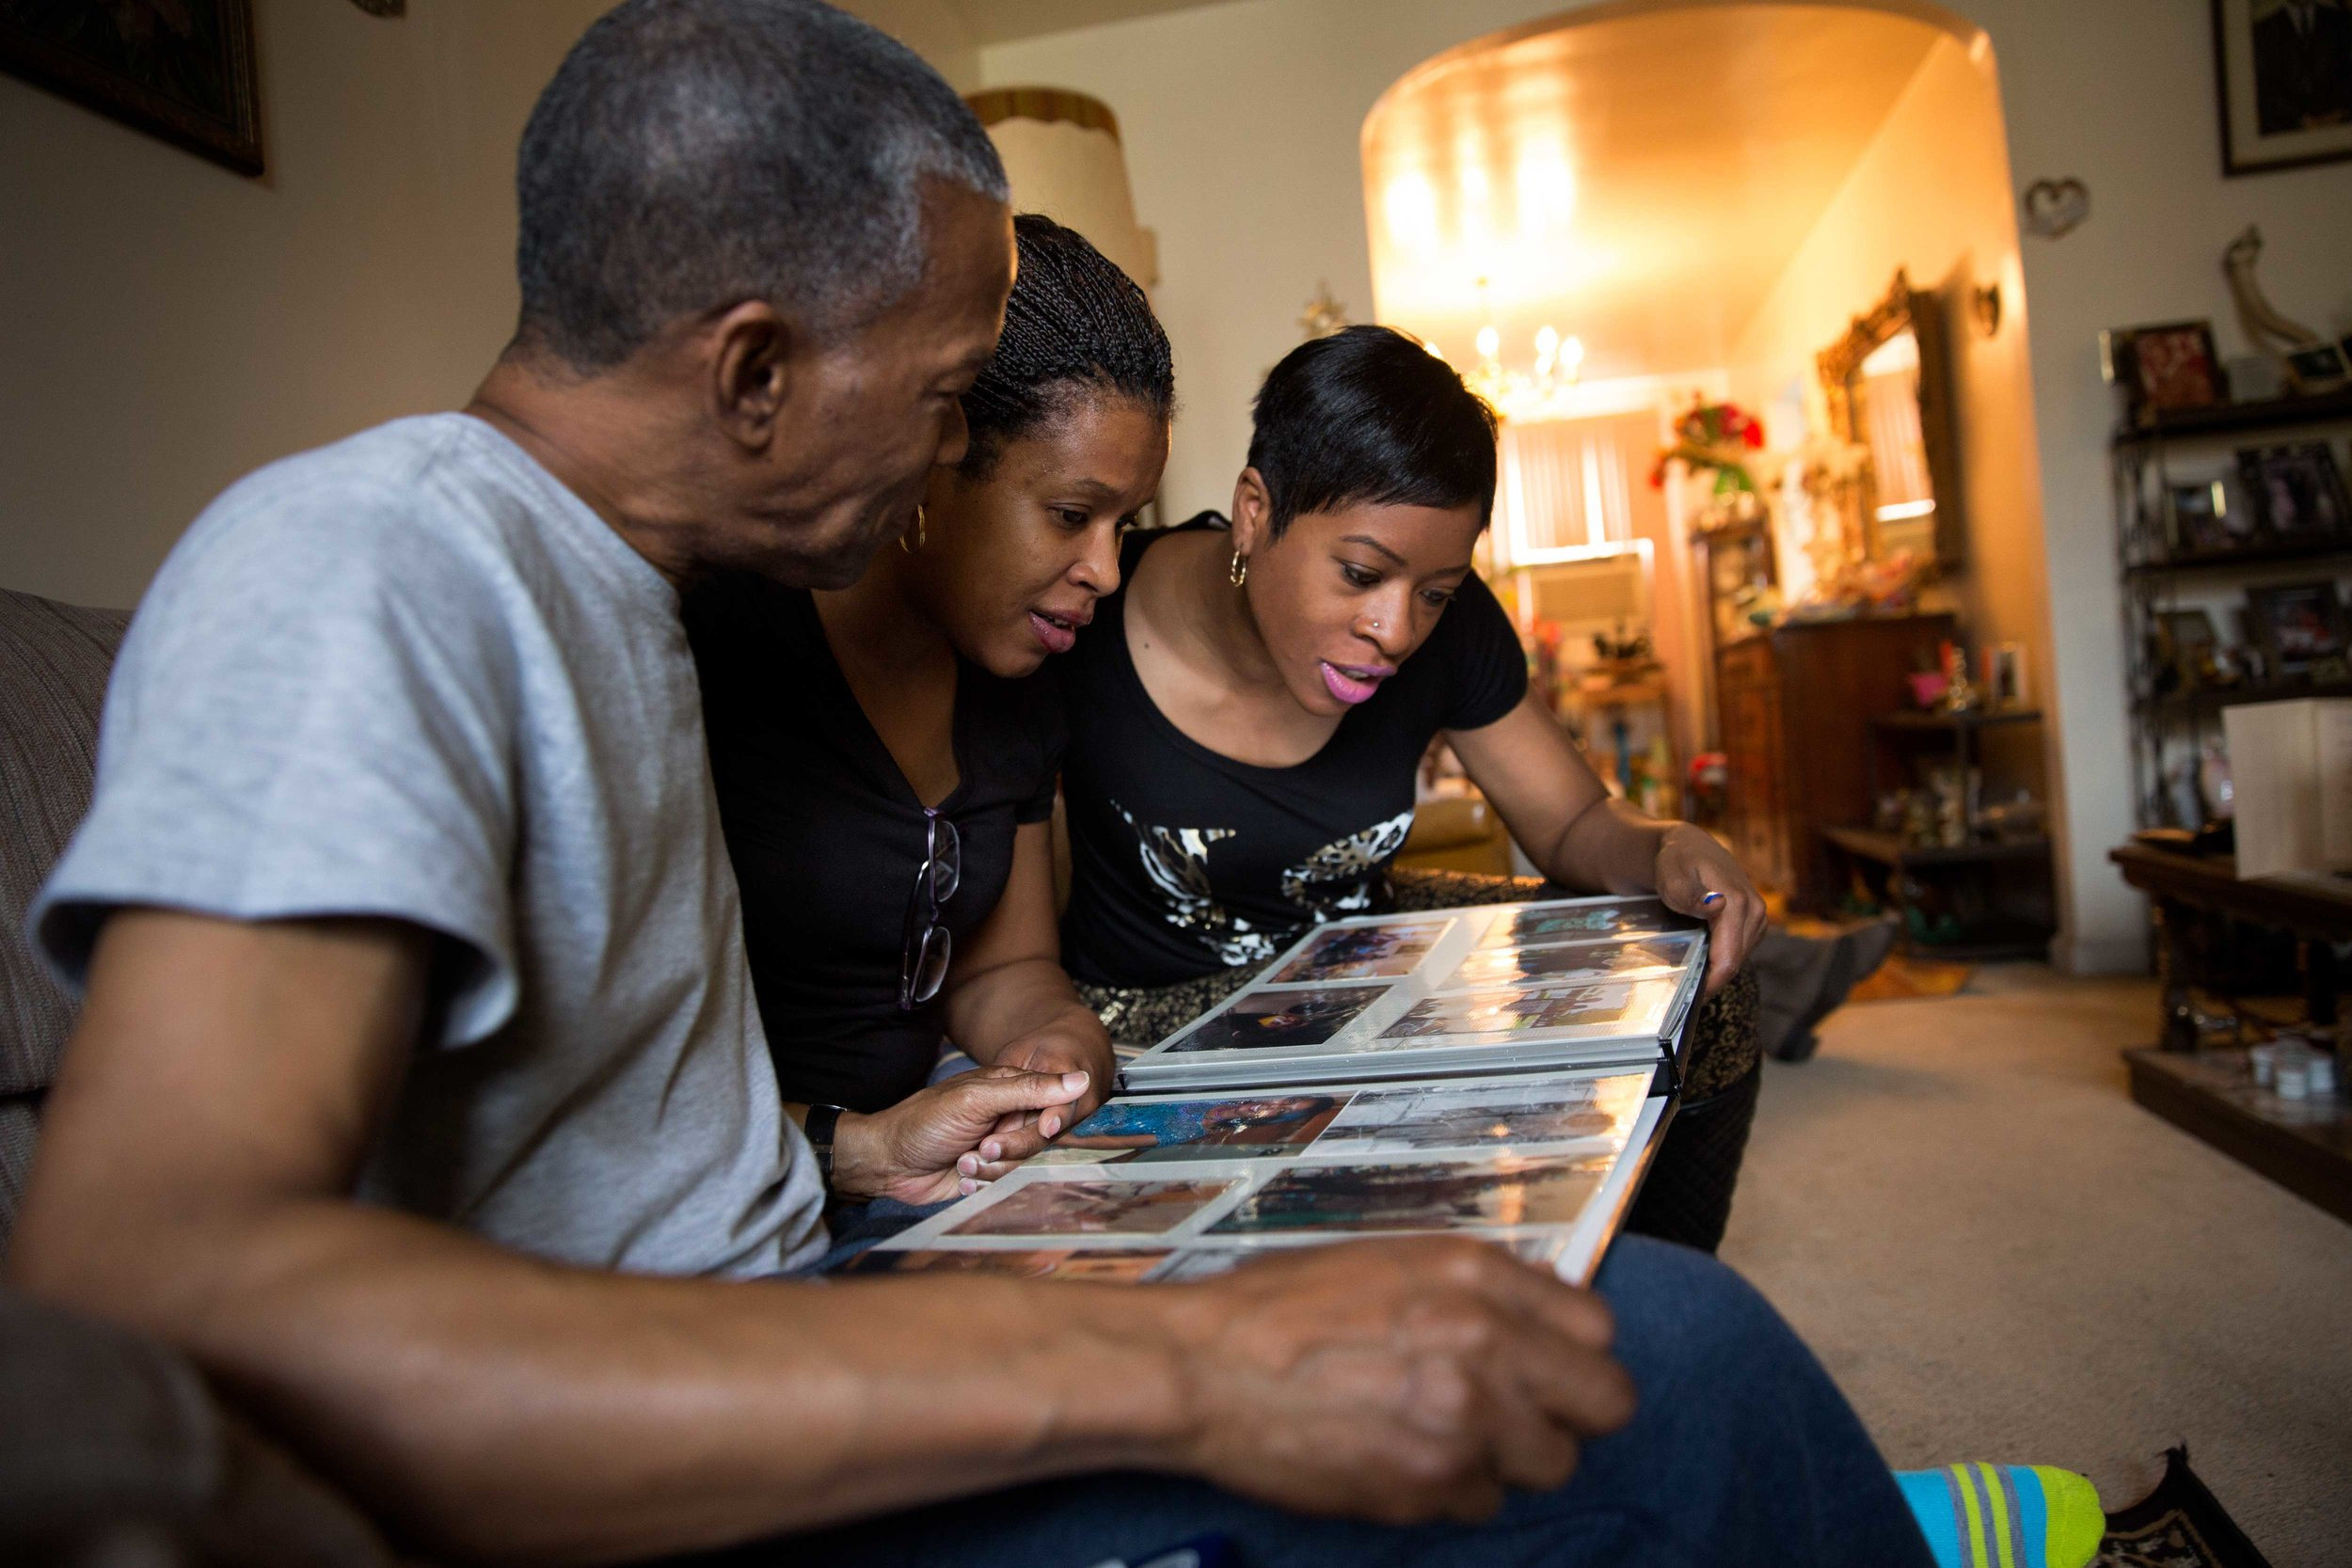 Ronald and his nieces look at a family album at Millie Mae's house.